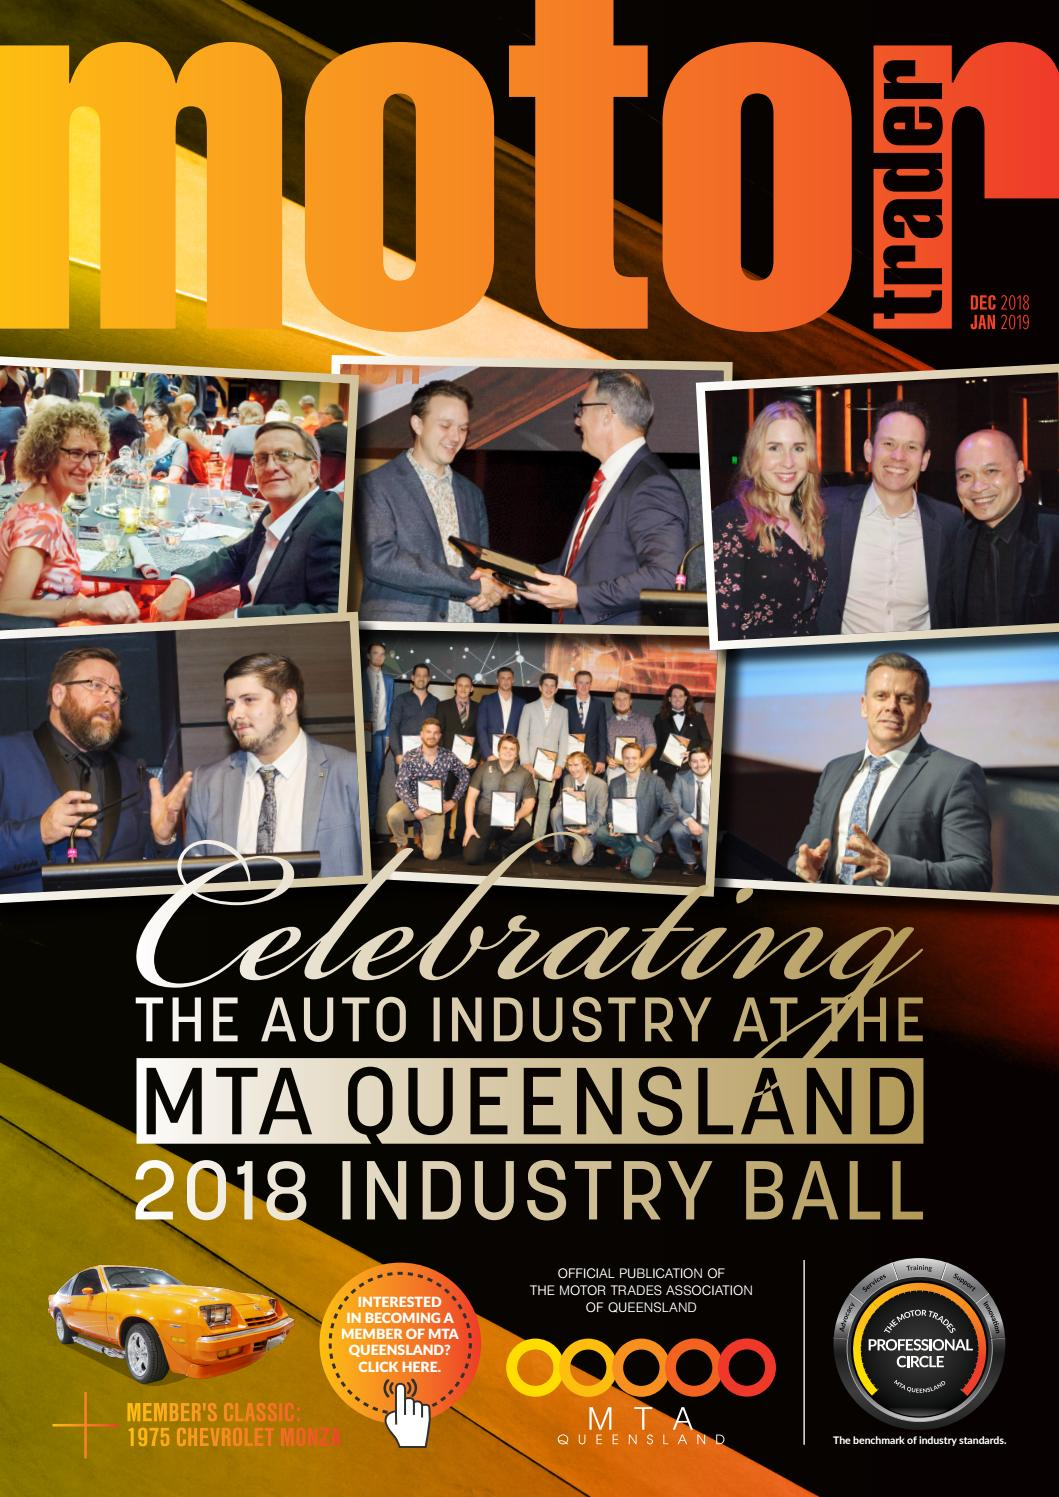 Motor Trader e-magazine Dec 2018 to Jan 2019 by MTAQ IT - issuu